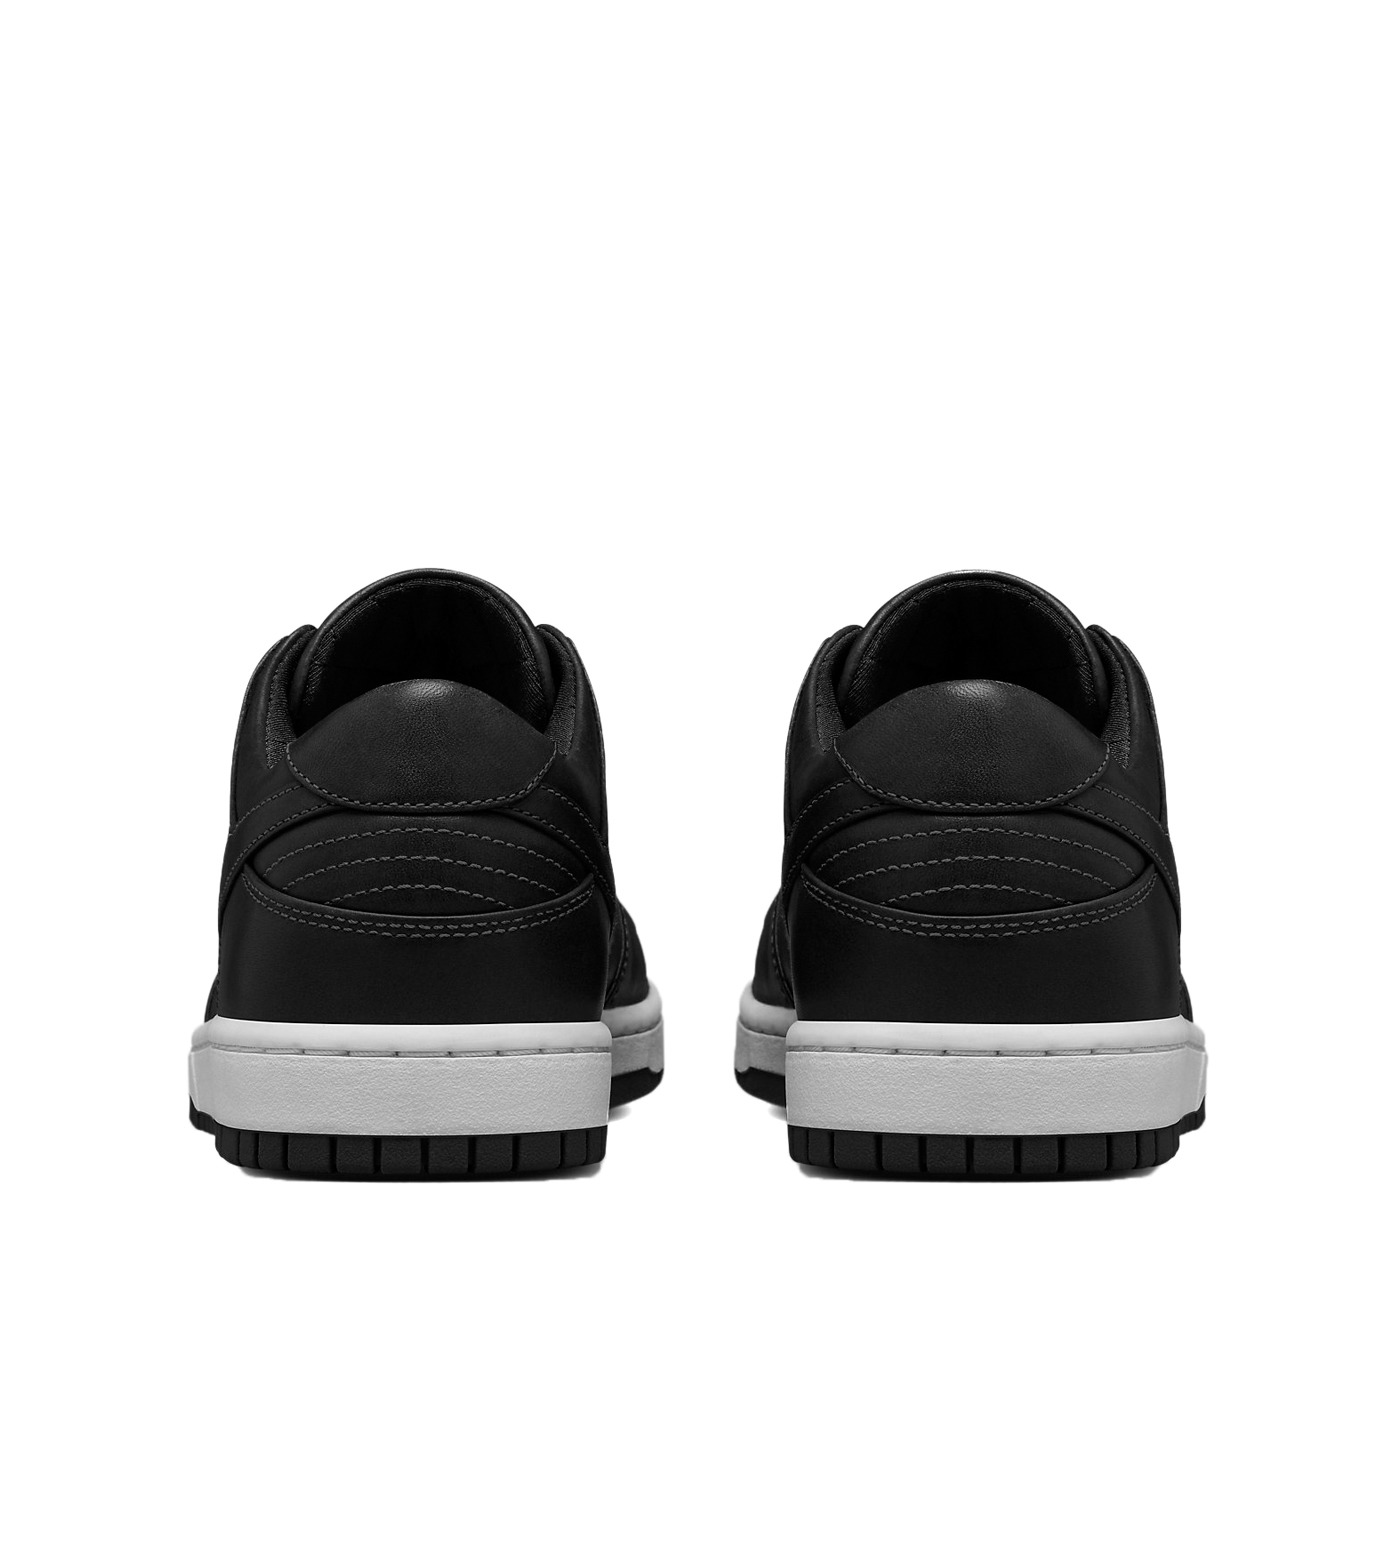 NIKE(ナイキ)のLAB DUNK LUX LOW-BLACK(シューズ/shoes)-857587-001-13 拡大詳細画像5